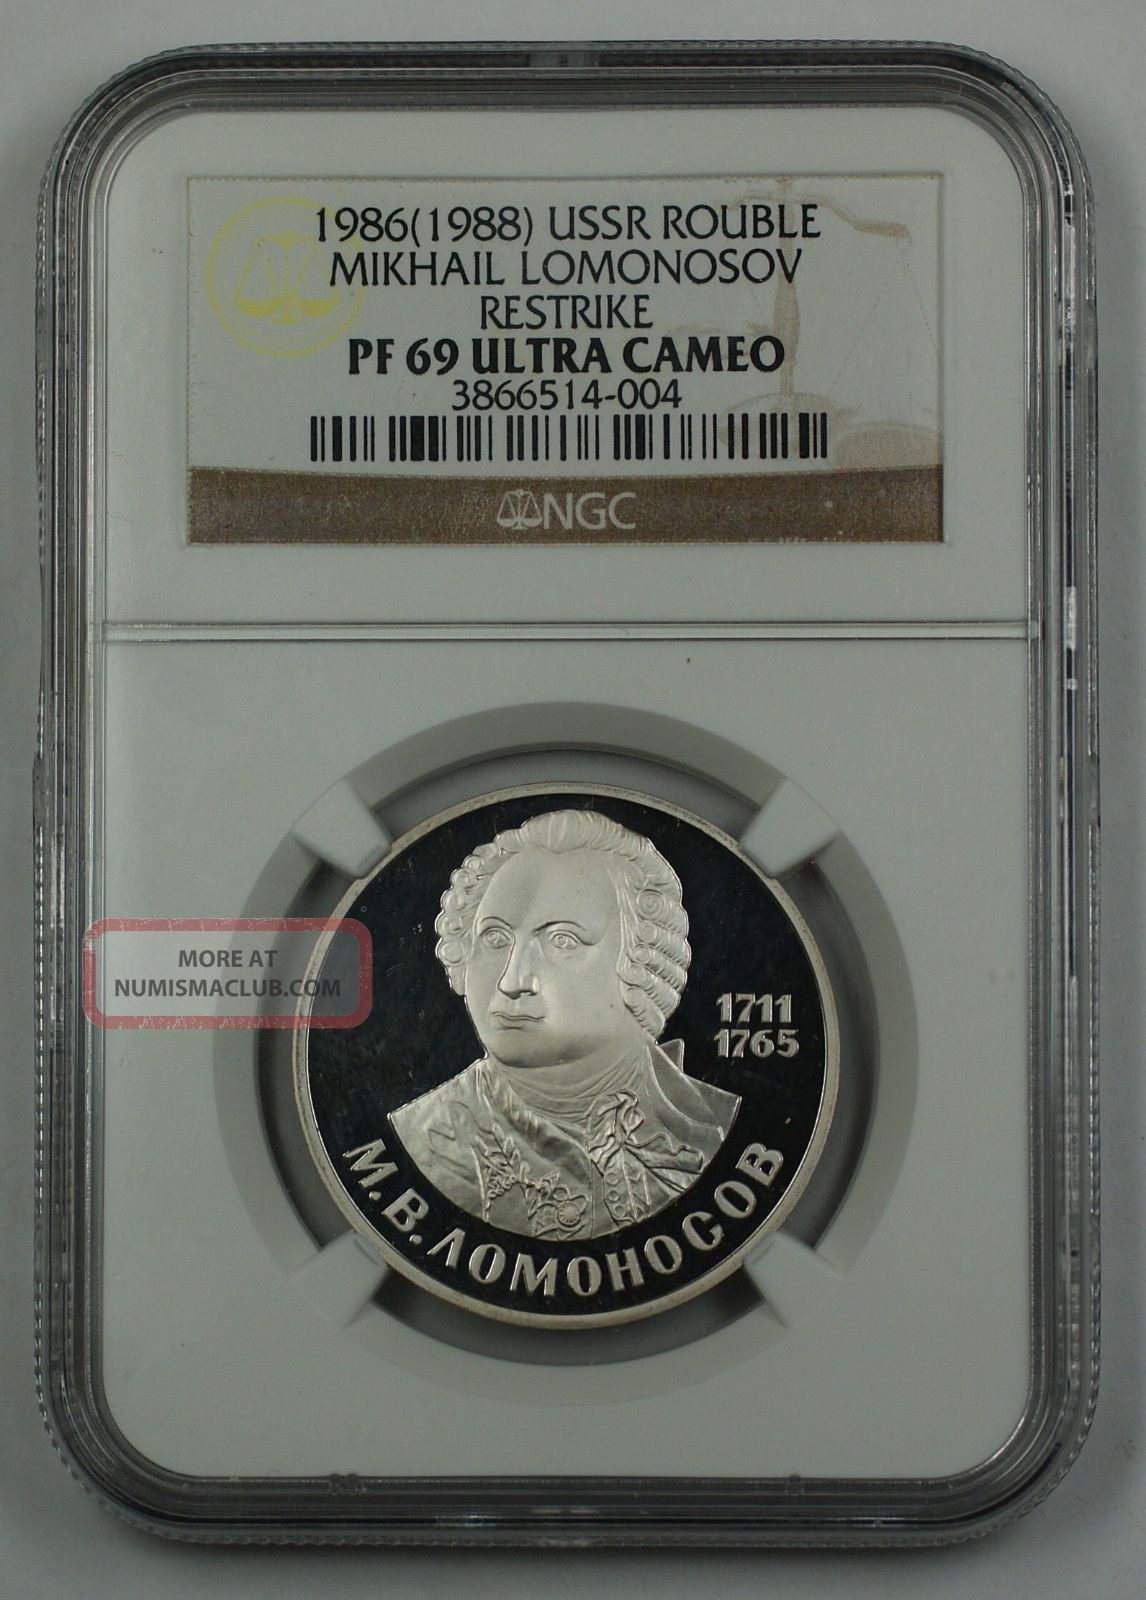 1986 (1988) Ussr Rouble Mikhail Lomonosov Restrike Coin Ngc Pf - 69 Ultra Cameo Russia photo